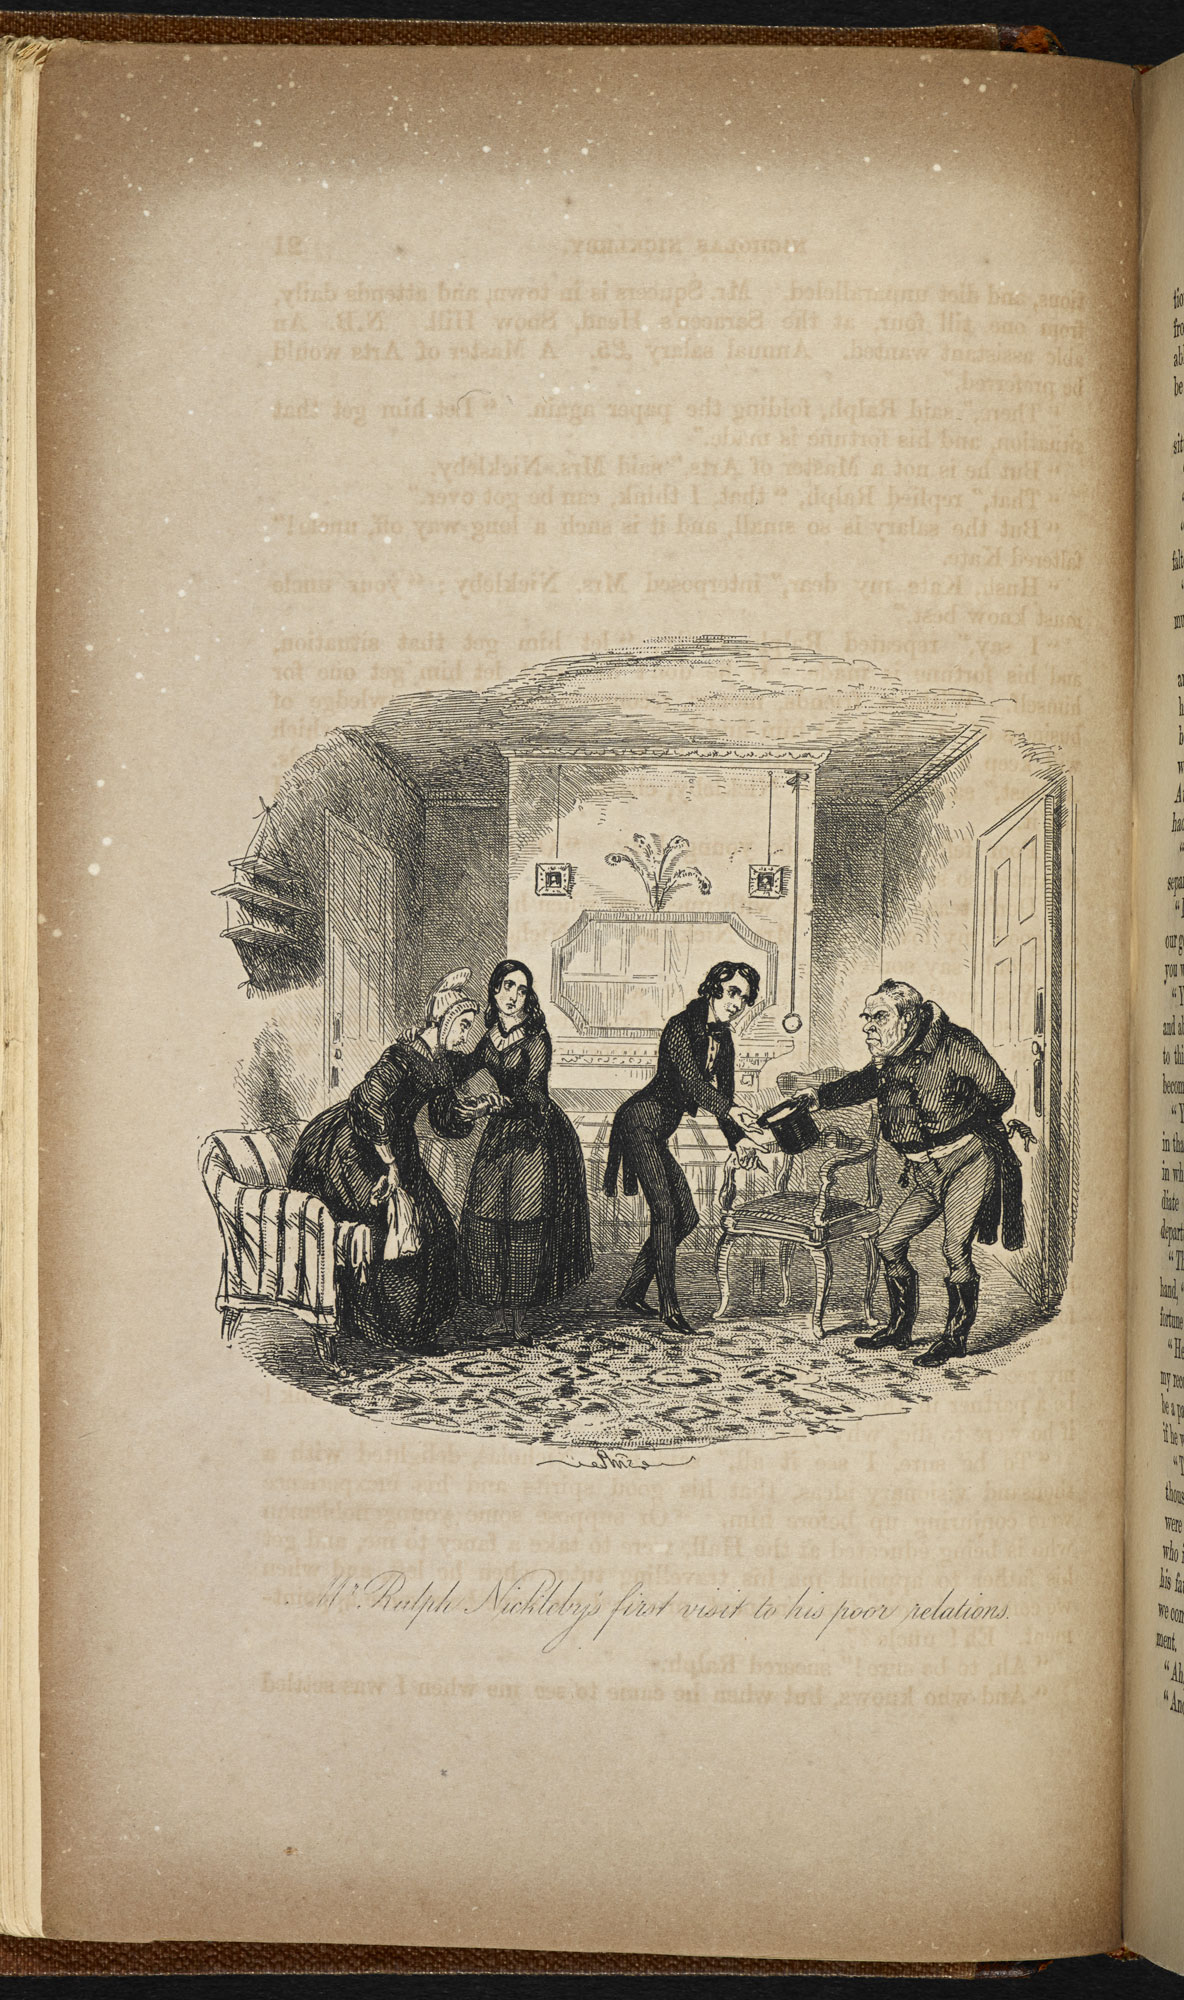 Illustrations to Nicholas Nickleby [page: facing p. 21]